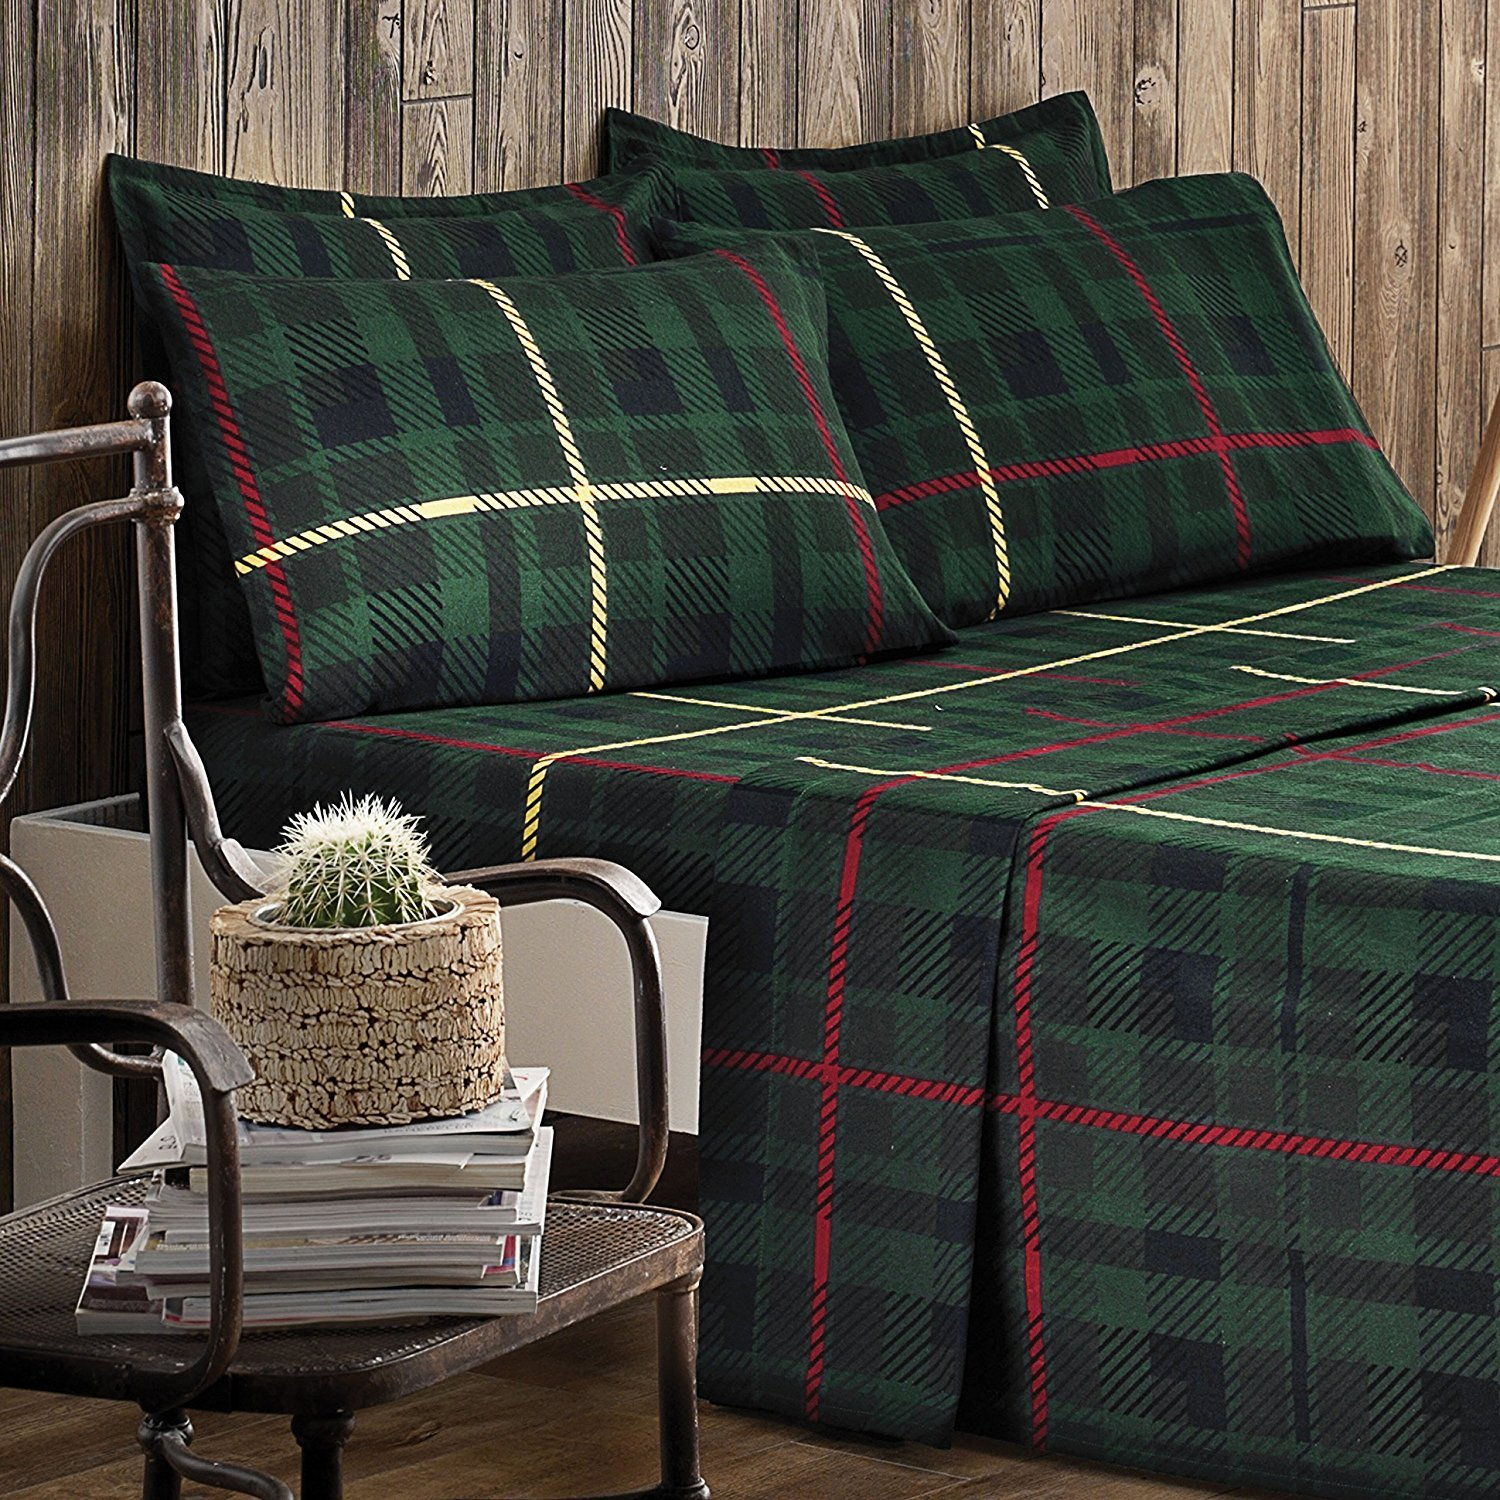 100 Percent Cotton Green Plaid Flannel Sheets | 6 Pieces Bed Sheet Set | For Men And Women| 1 Flat and 1 Fitted Sheets, 2 Pillow Cases, 2 Shams | Organic and Soft | Premium Collection (King)